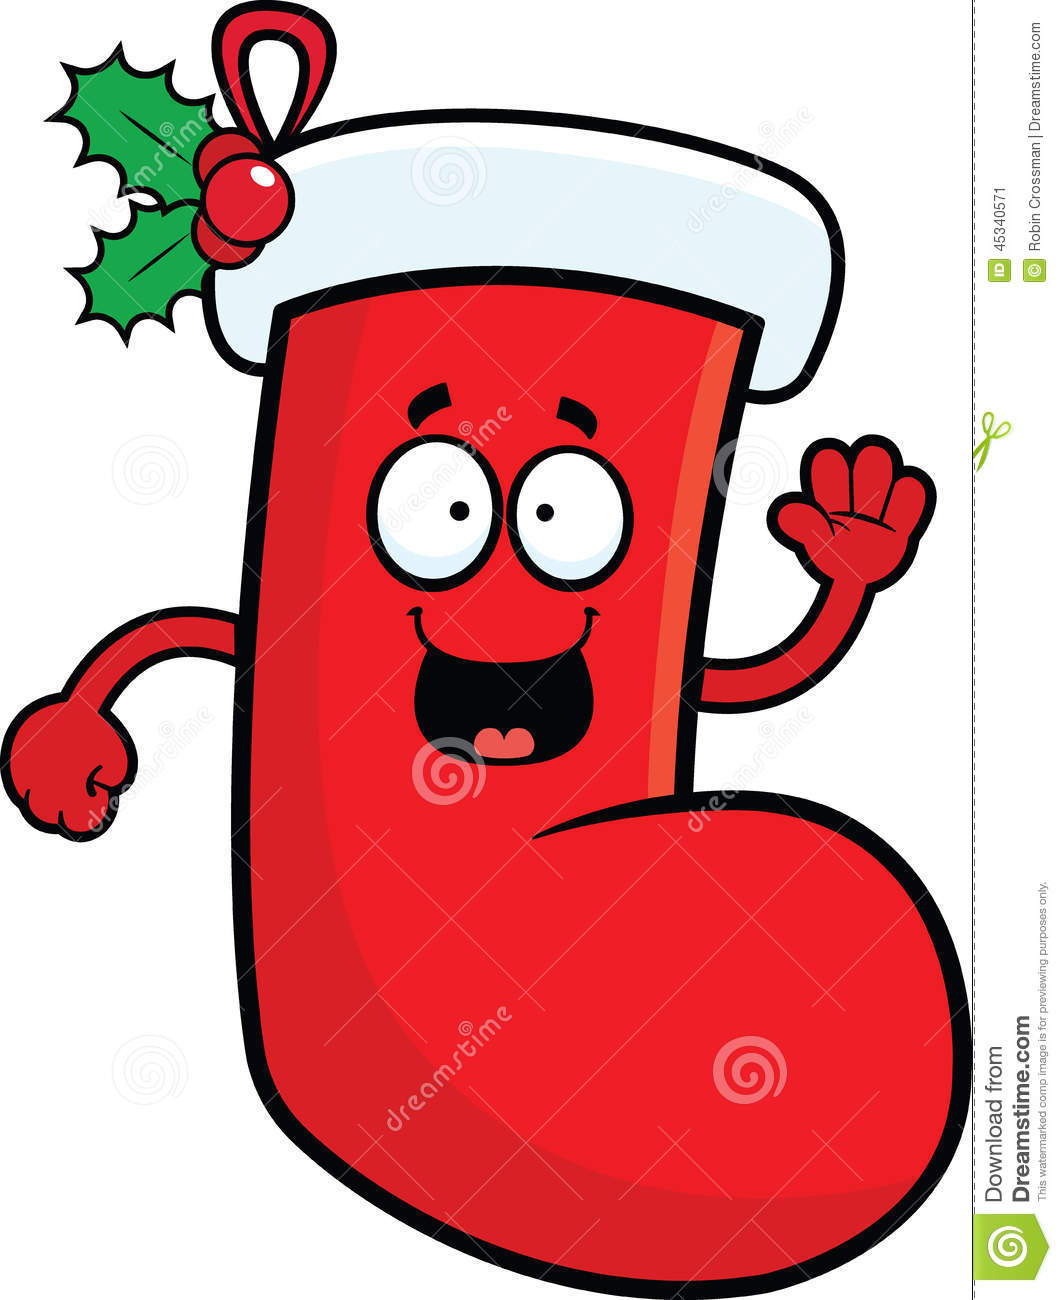 Christmas Stockings Cartoon.Cartoon Christmas Stocking Happy Stock Vector Illustration